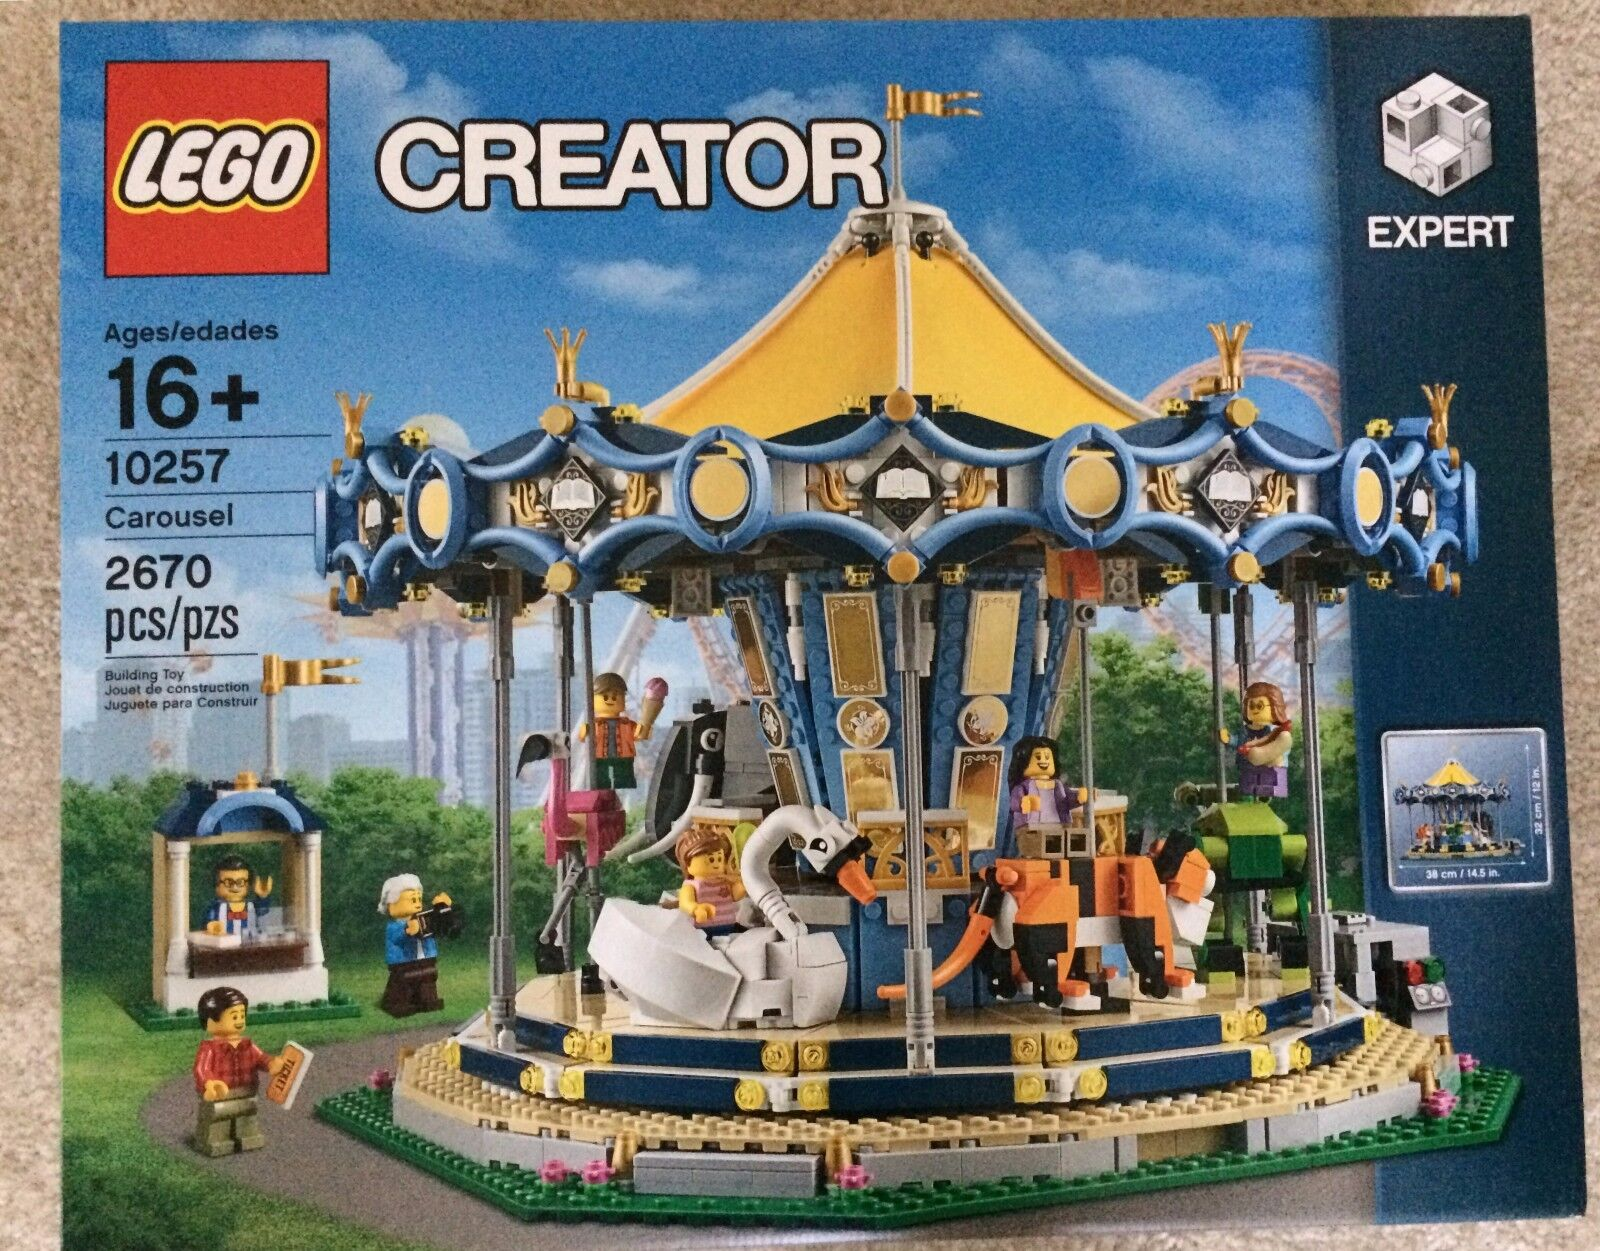 Lego Creator 10257 Carousel Brand New Sealed Toy  bluee Yellow